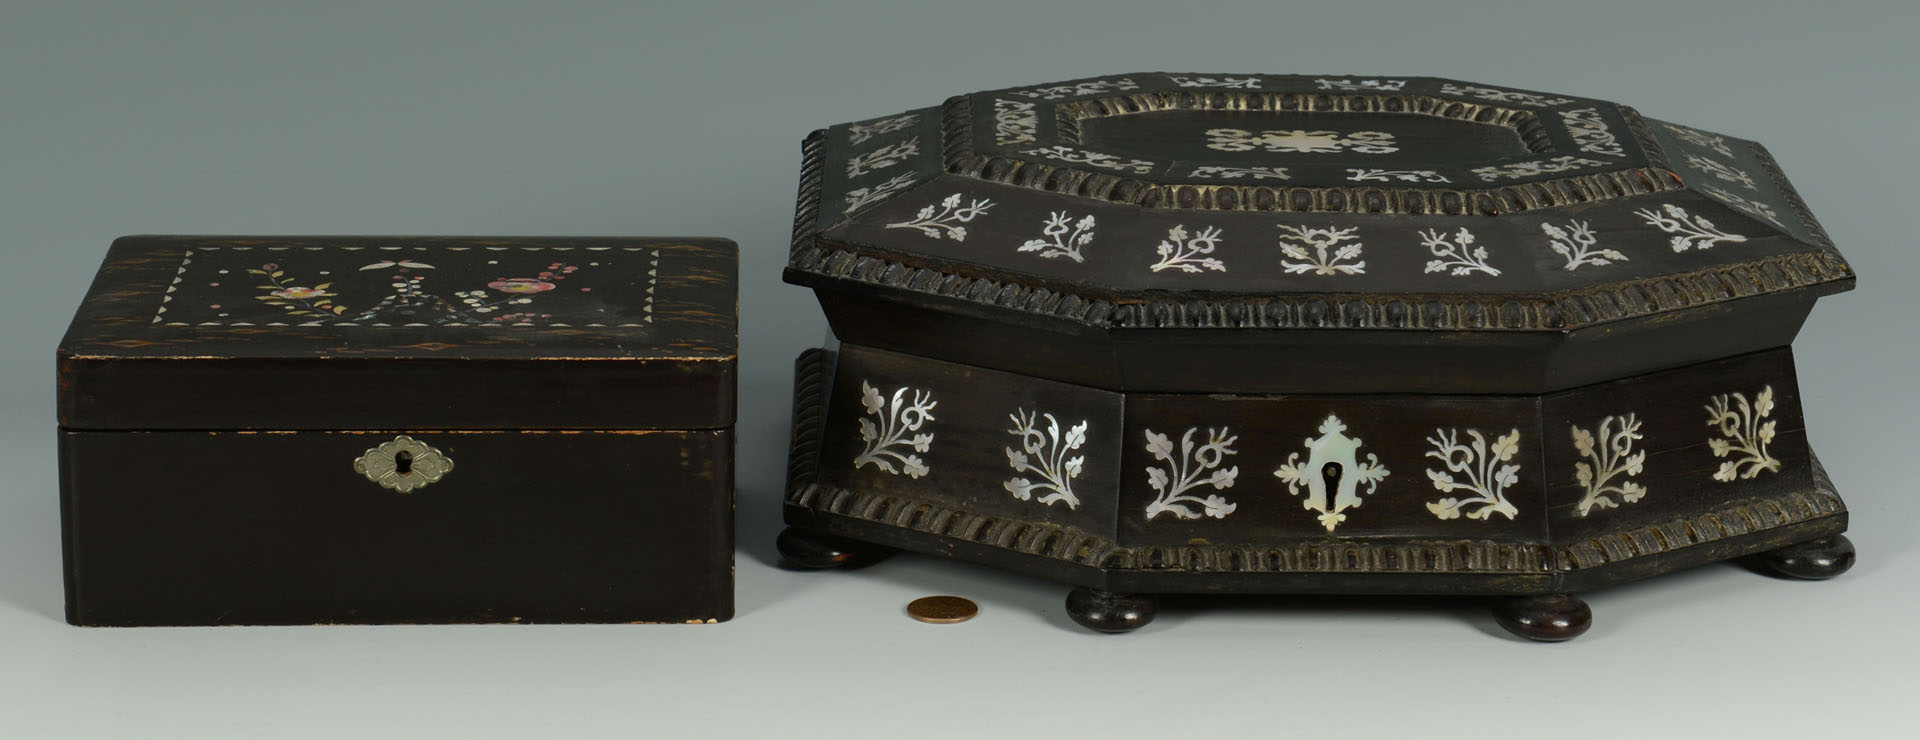 2 Lacquer & Mother of Pearl Inlay Boxes